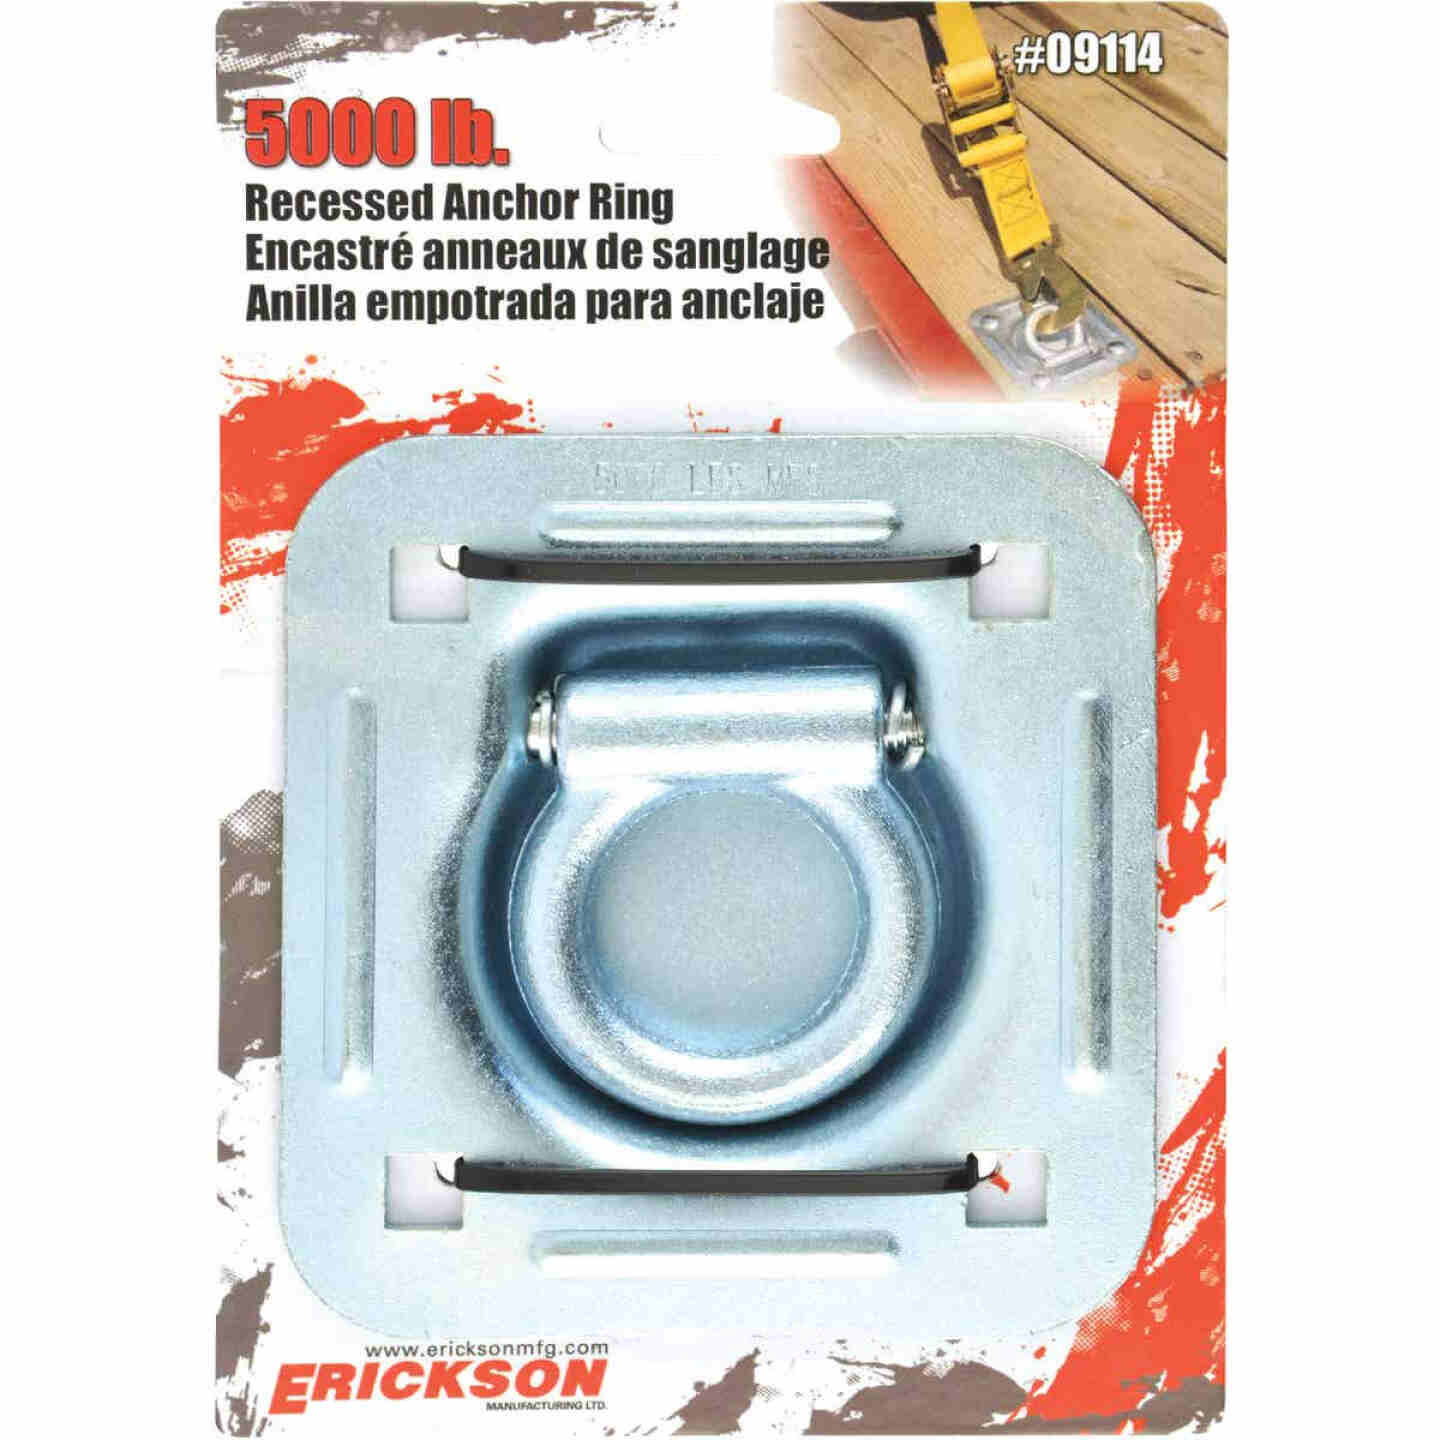 Erickson Recessed 5000 Lb. Anchor Ring Image 2